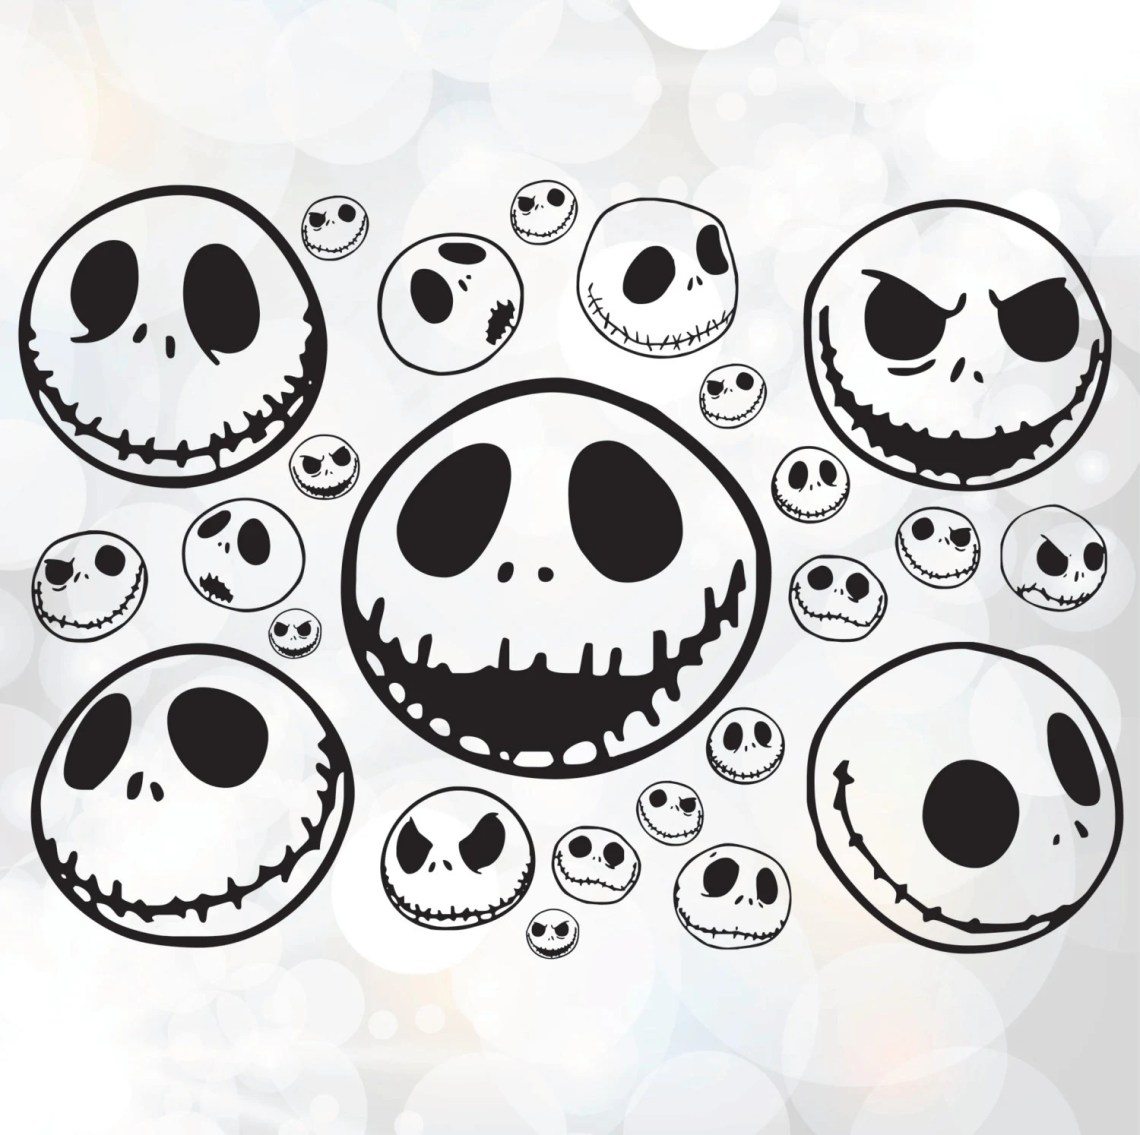 Download Jack Skellington SVG Nightmare Before Christmas by Linescut